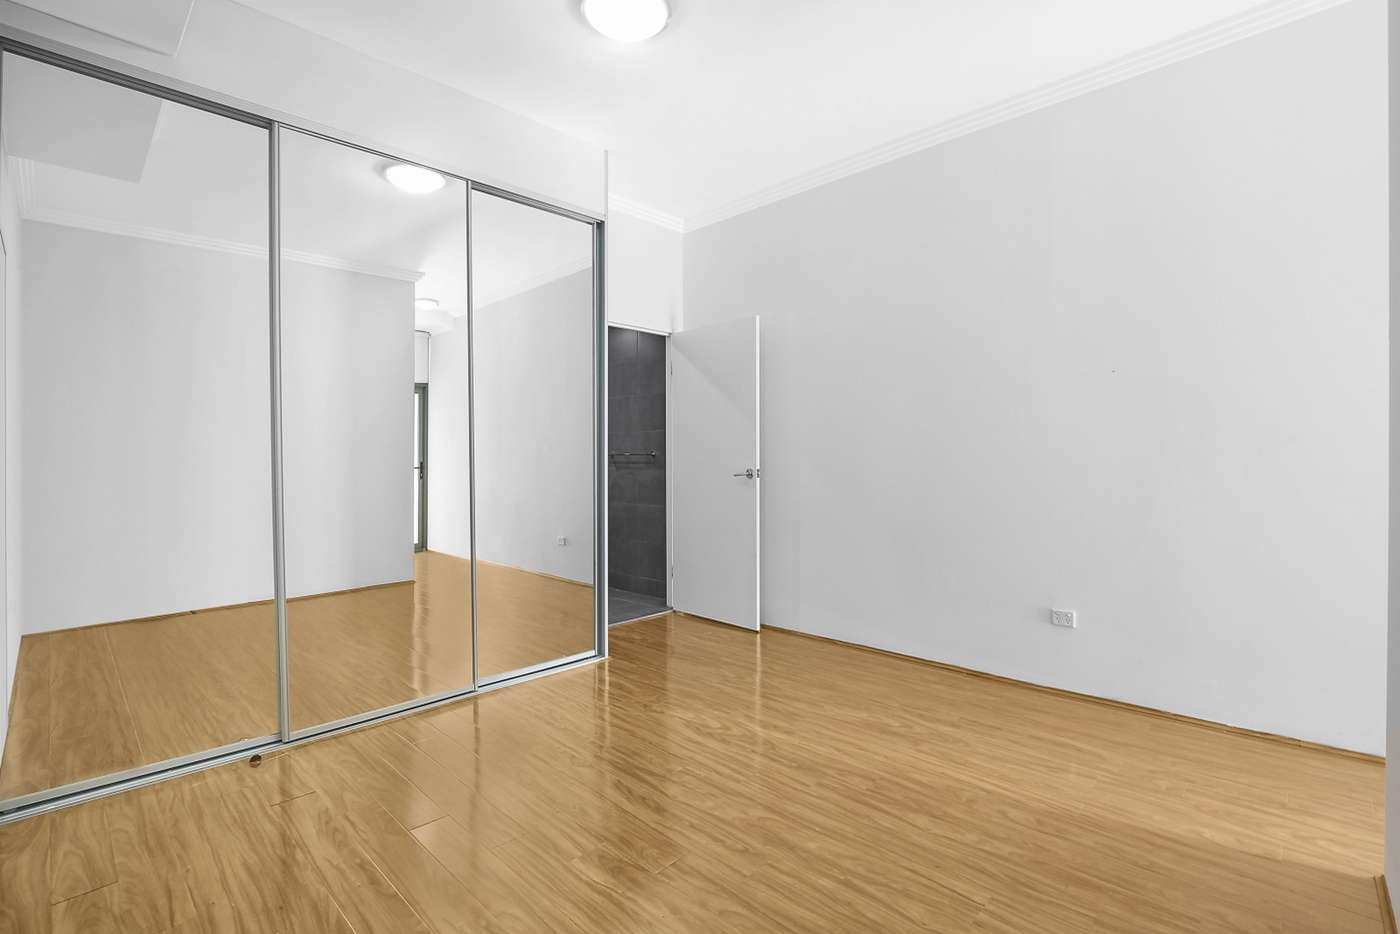 Sixth view of Homely unit listing, 71 Gray Street, Kogarah NSW 2217